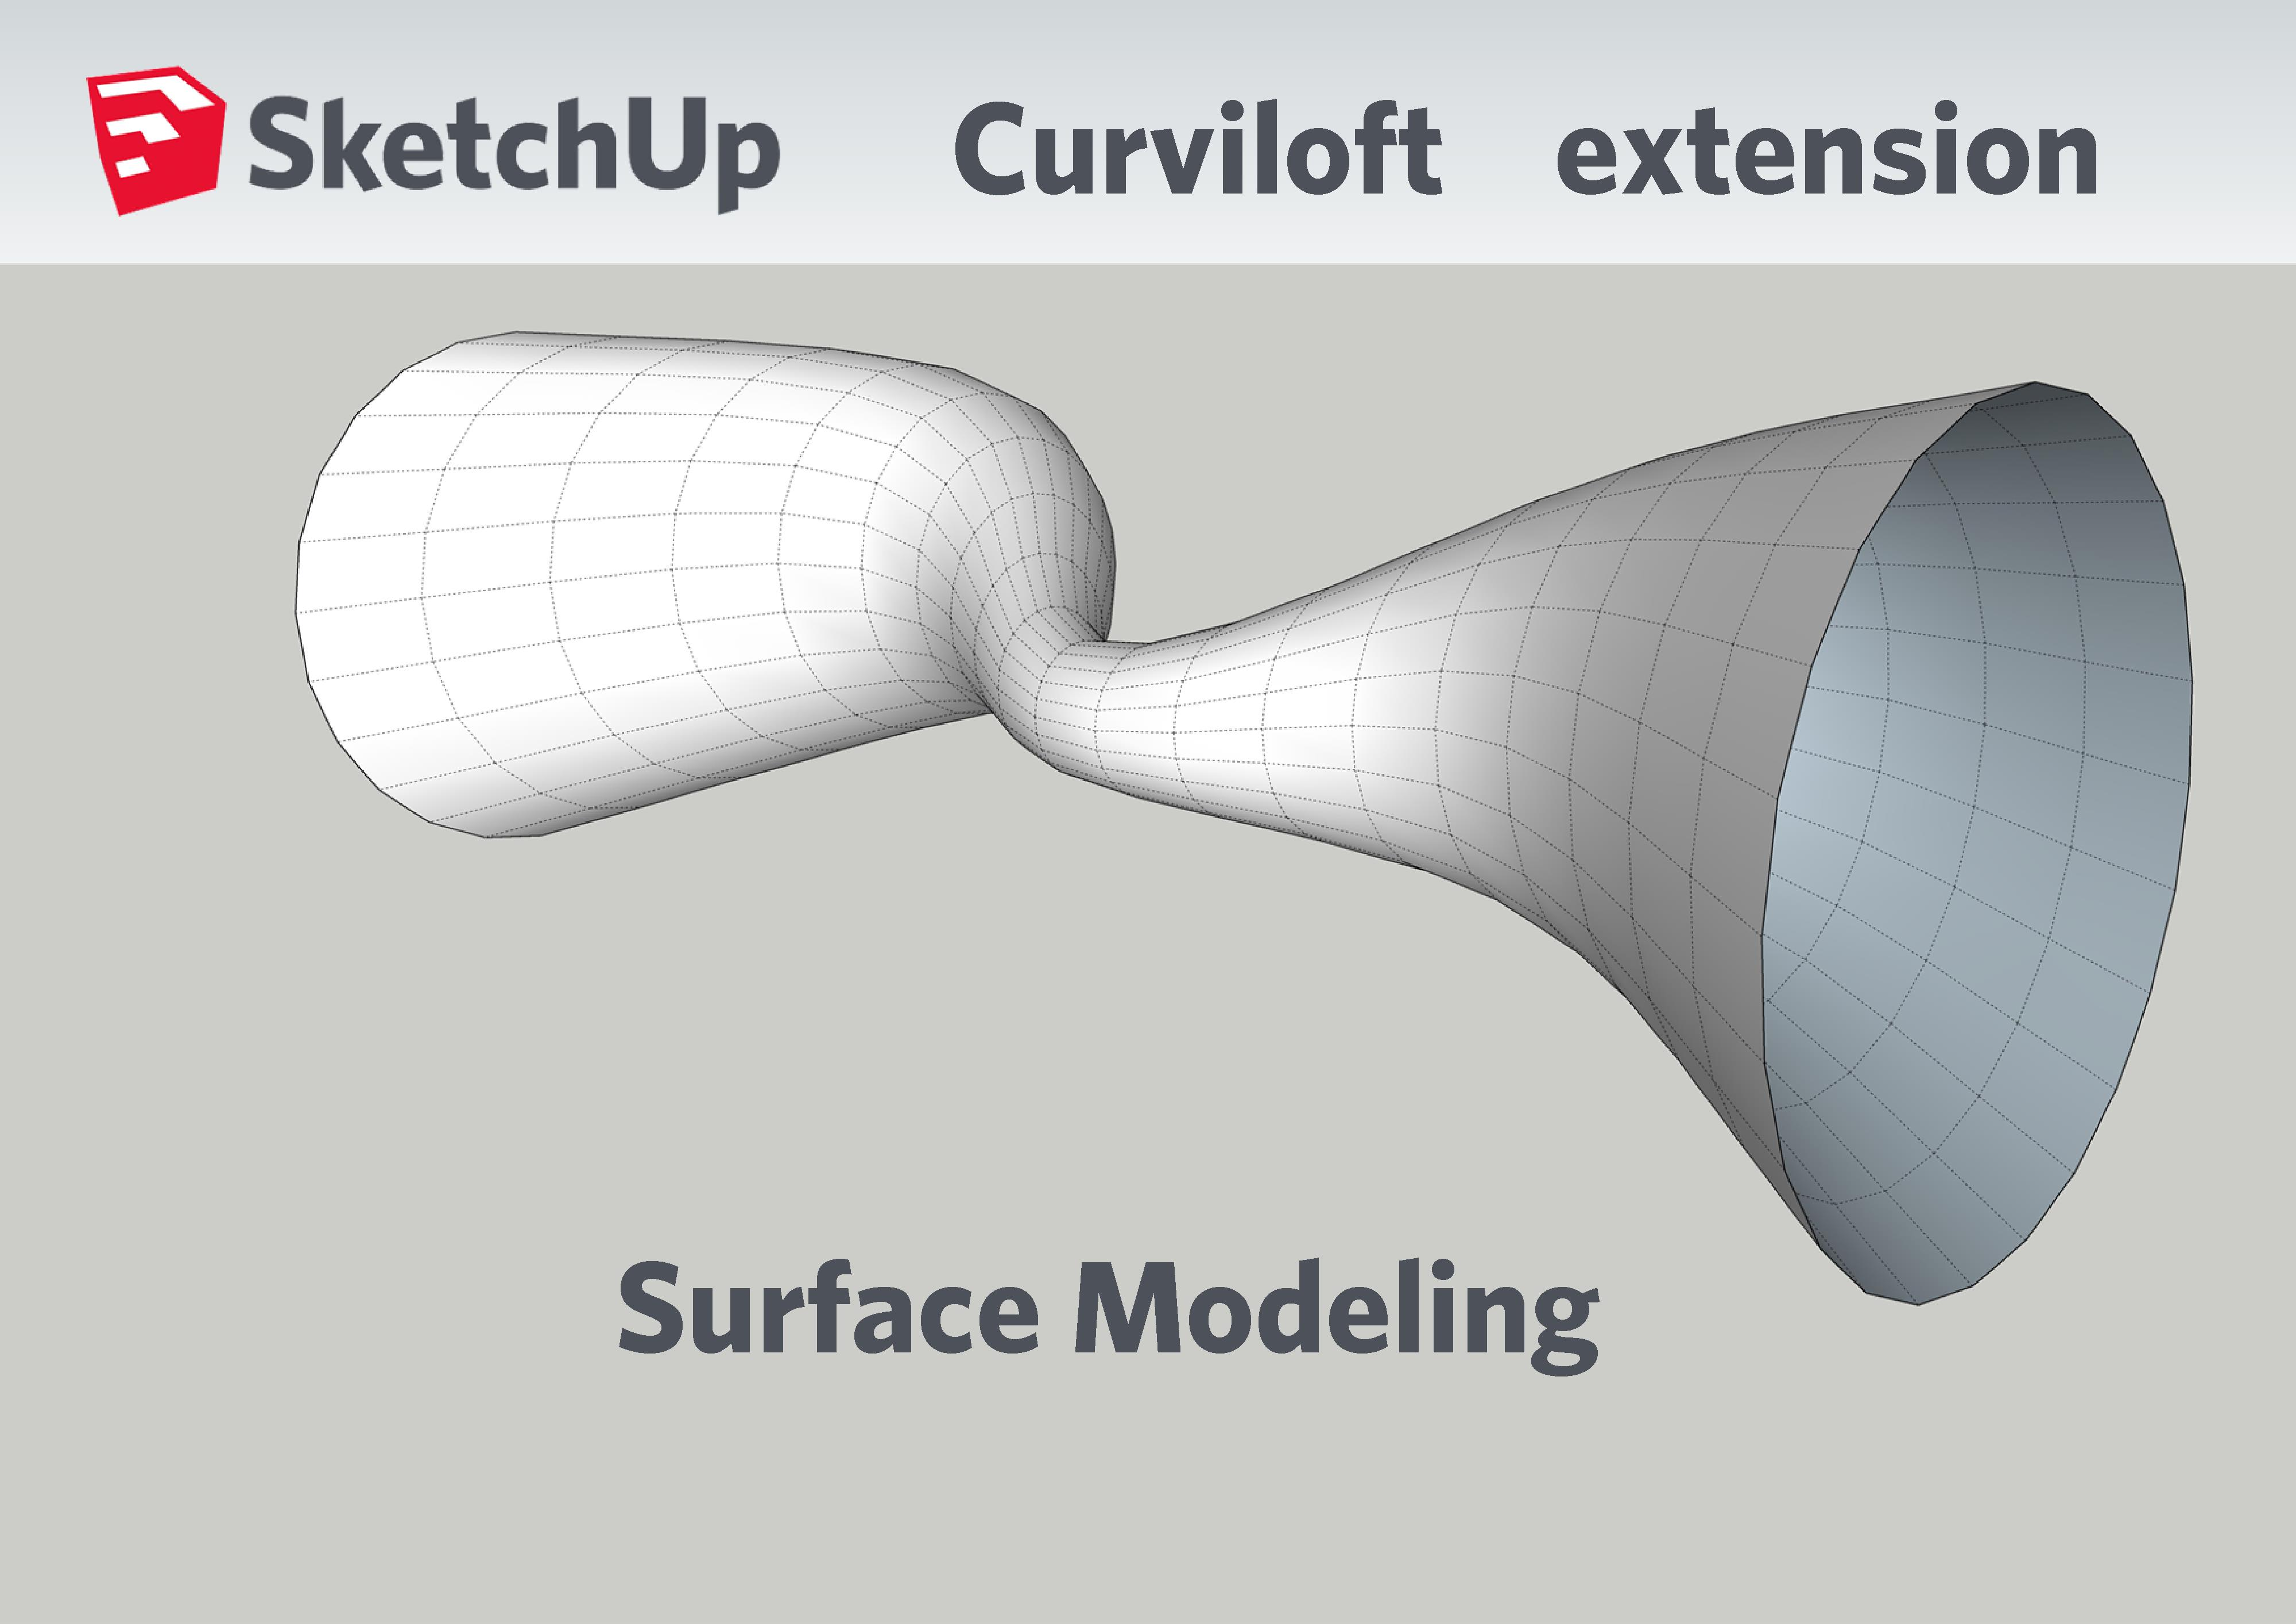 Curviloft Extension for SketchUp